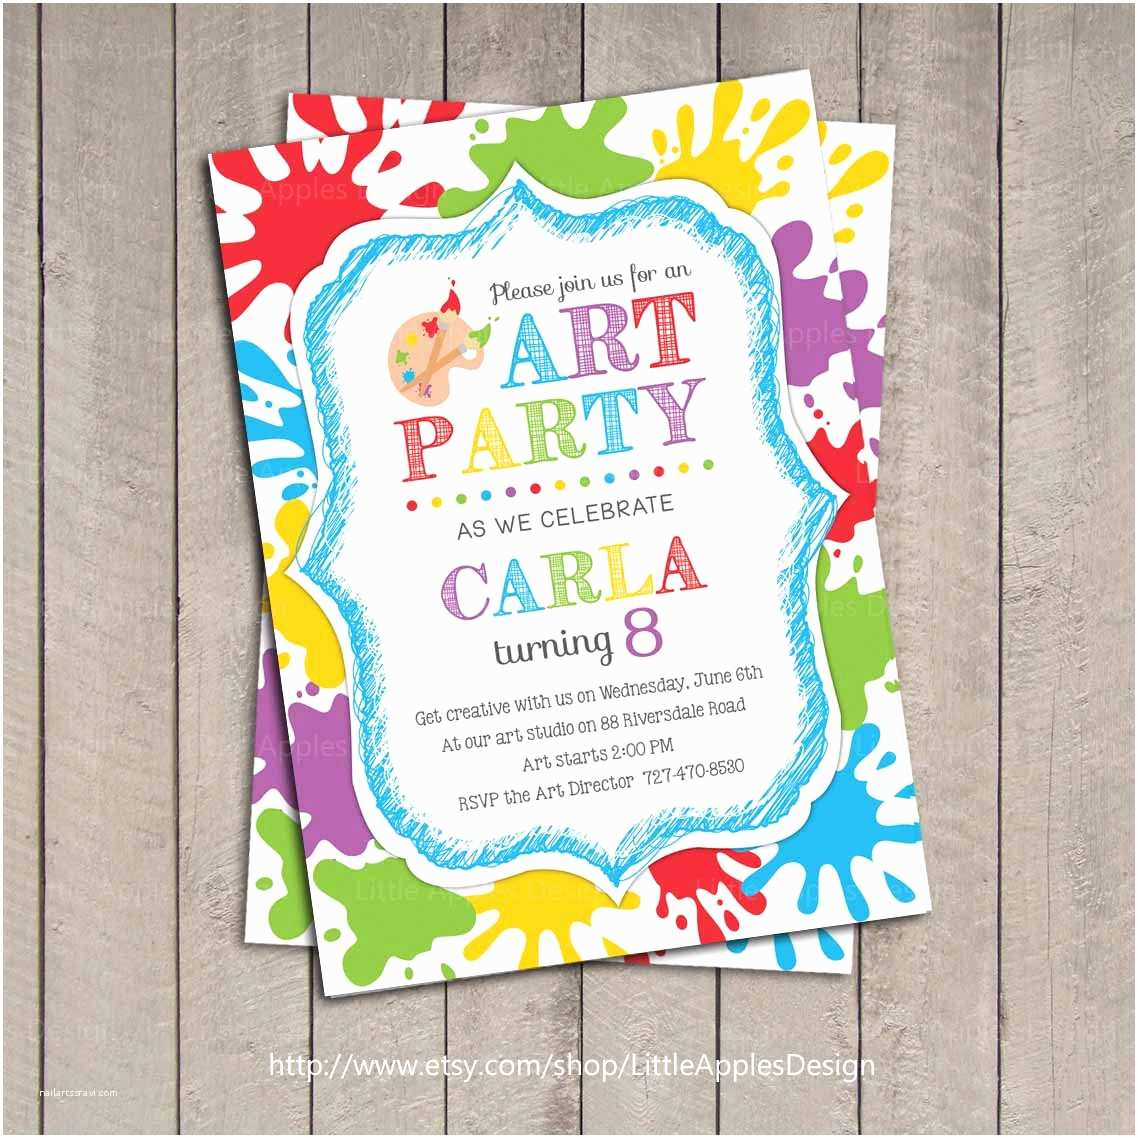 Painting Birthday Party Invitations Art Party Invitation Kids Art Party Invitation